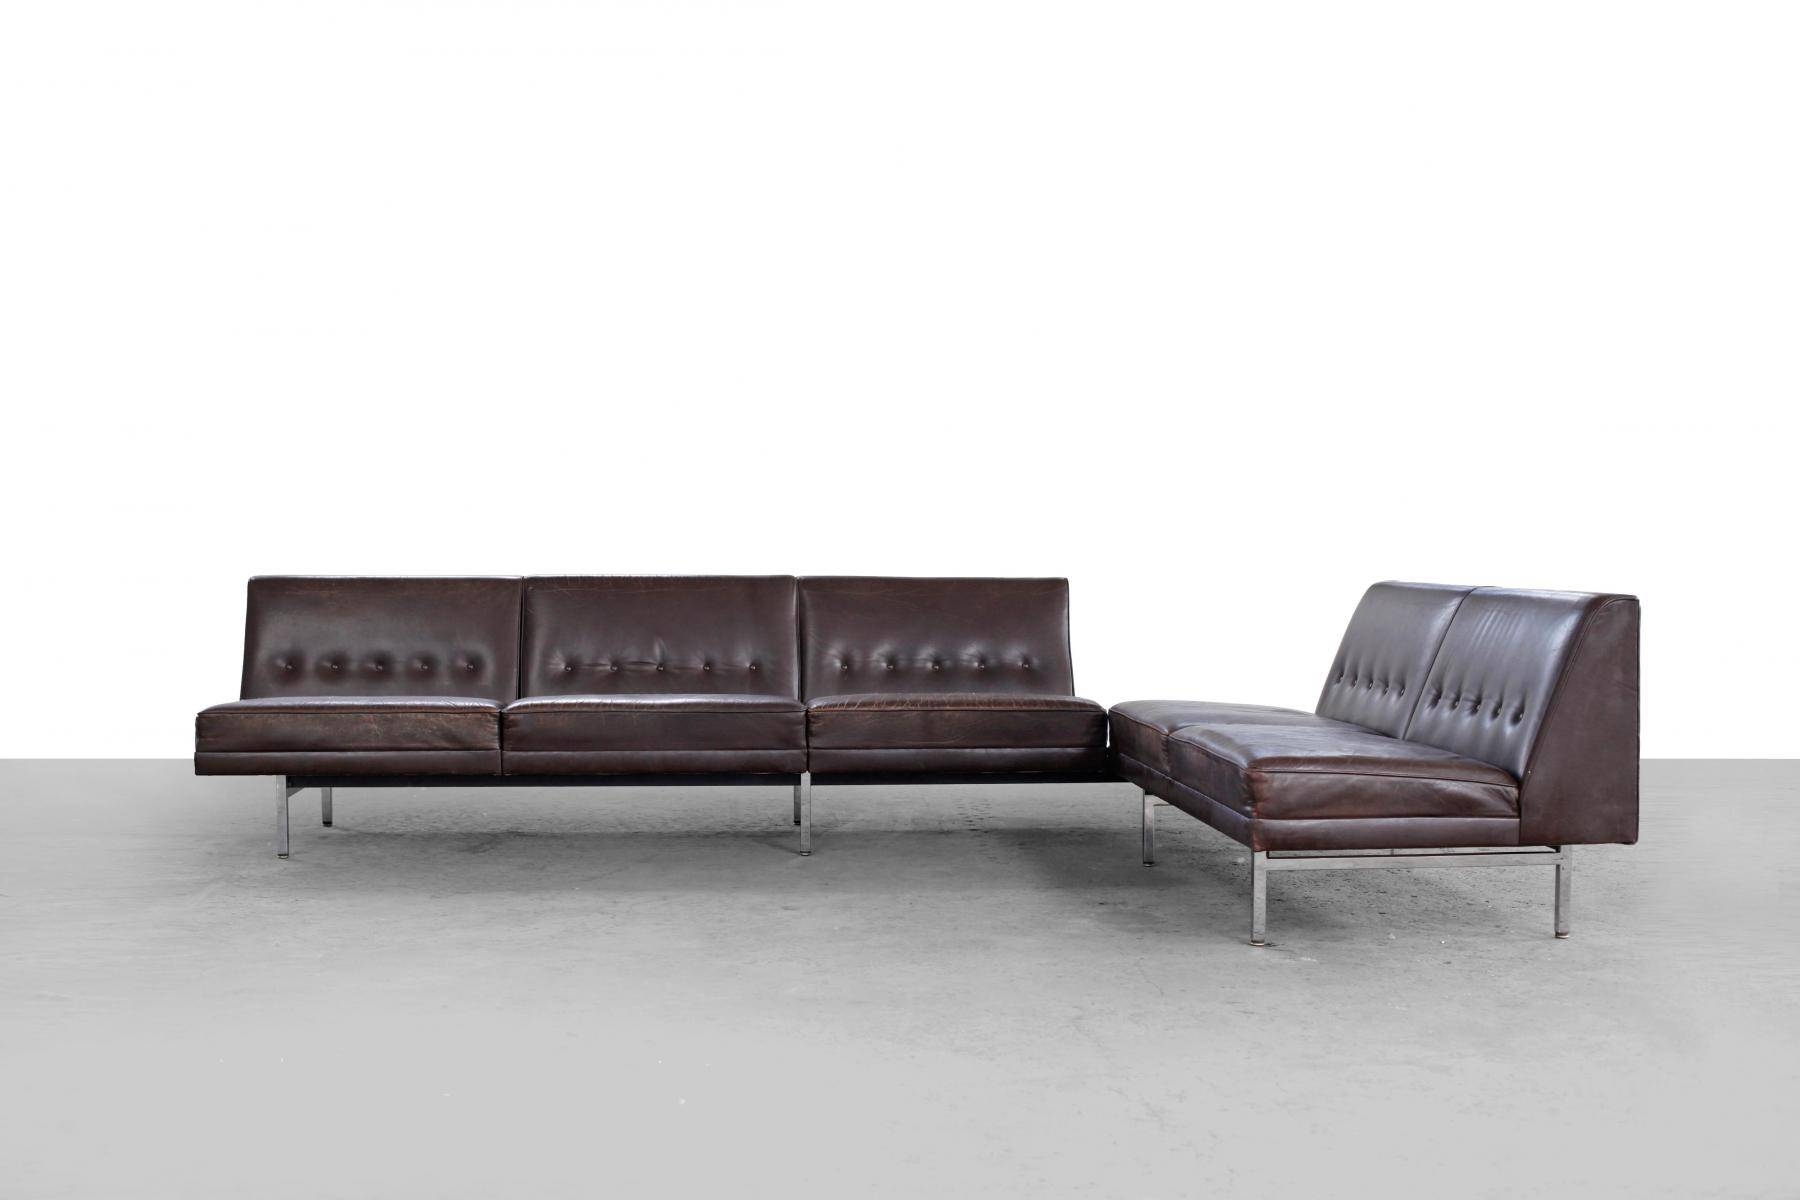 George Nelson Sofa 16 With George Nelson Sofa | Jinanhongyu with regard to George Nelson Sofas (Image 7 of 15)